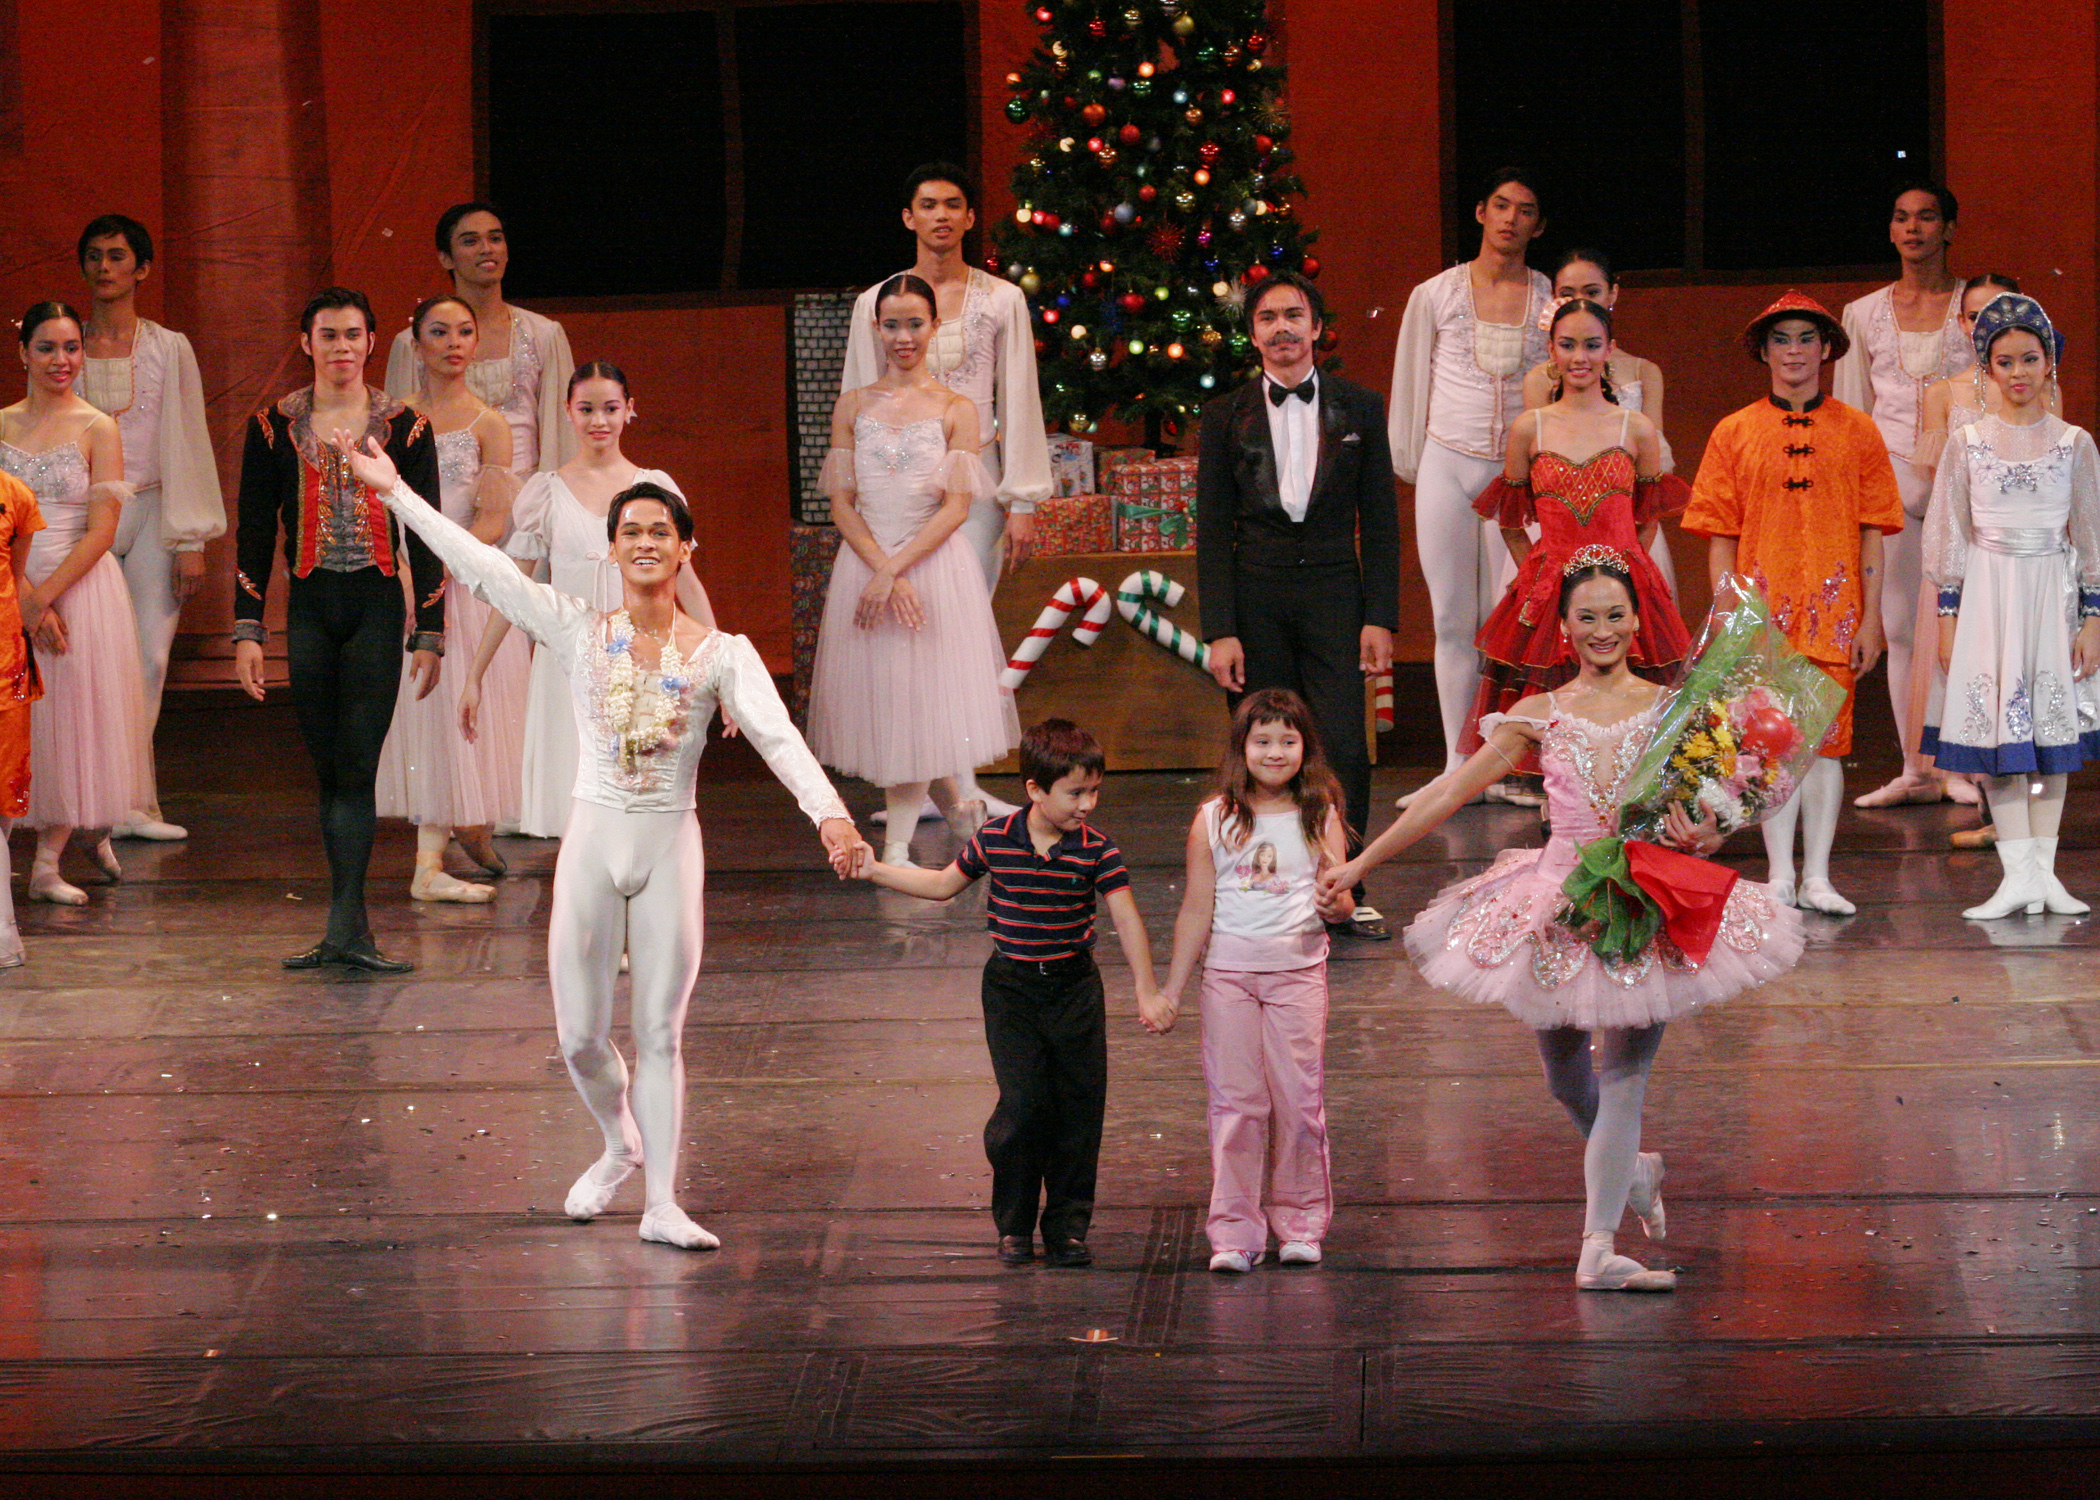 Mac and Missy take bows along with their mom and partner Rudy De Dios after the ballet pair's performance in  The Nutcracker  in 2005. Photo by Ocs Alvarez